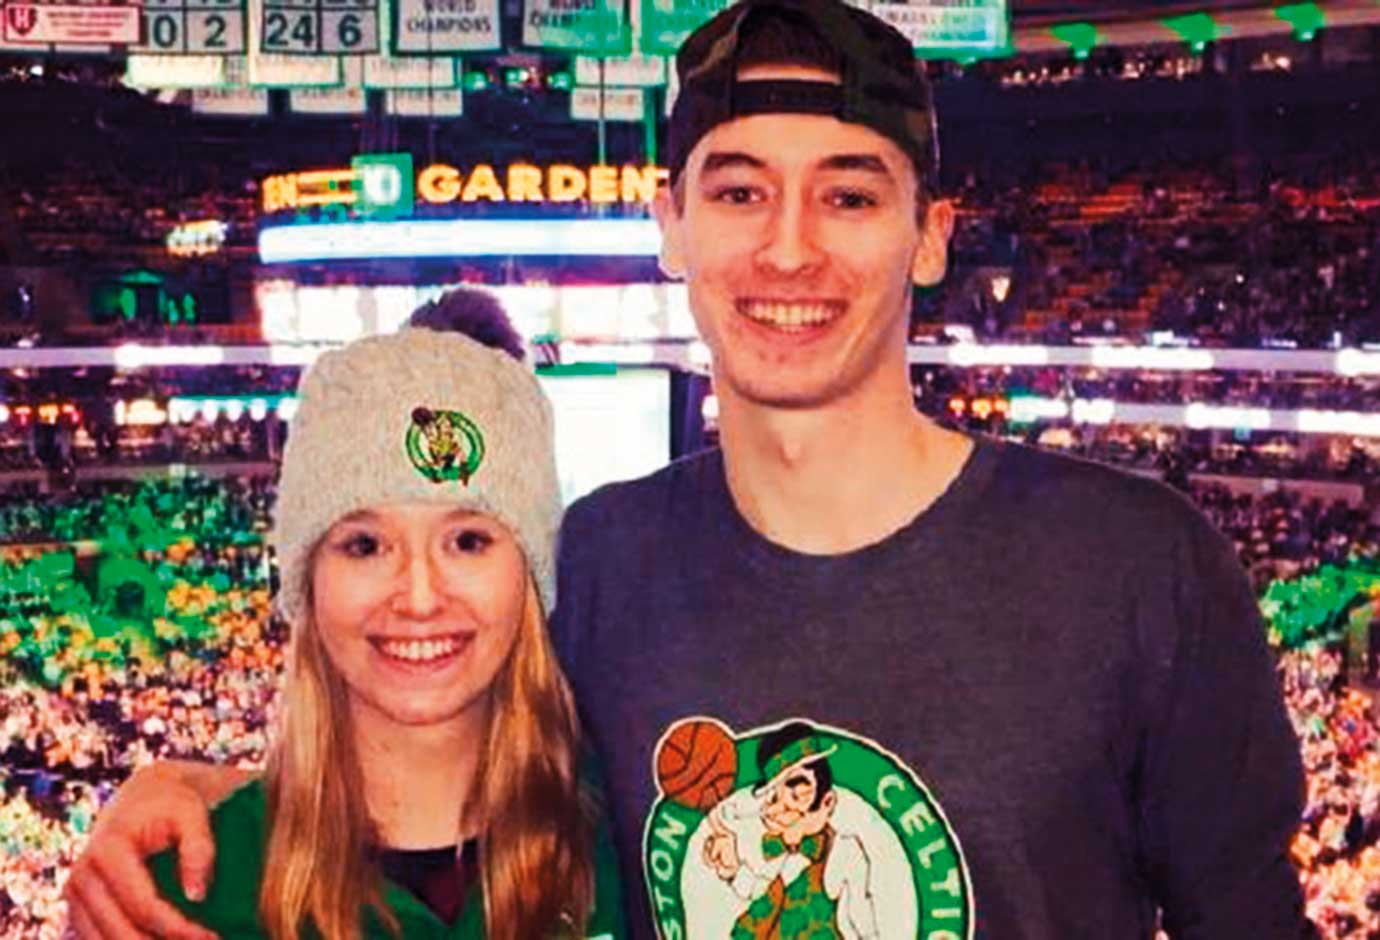 Shane Missler, 20, a Boston Celtics fan, with his sister